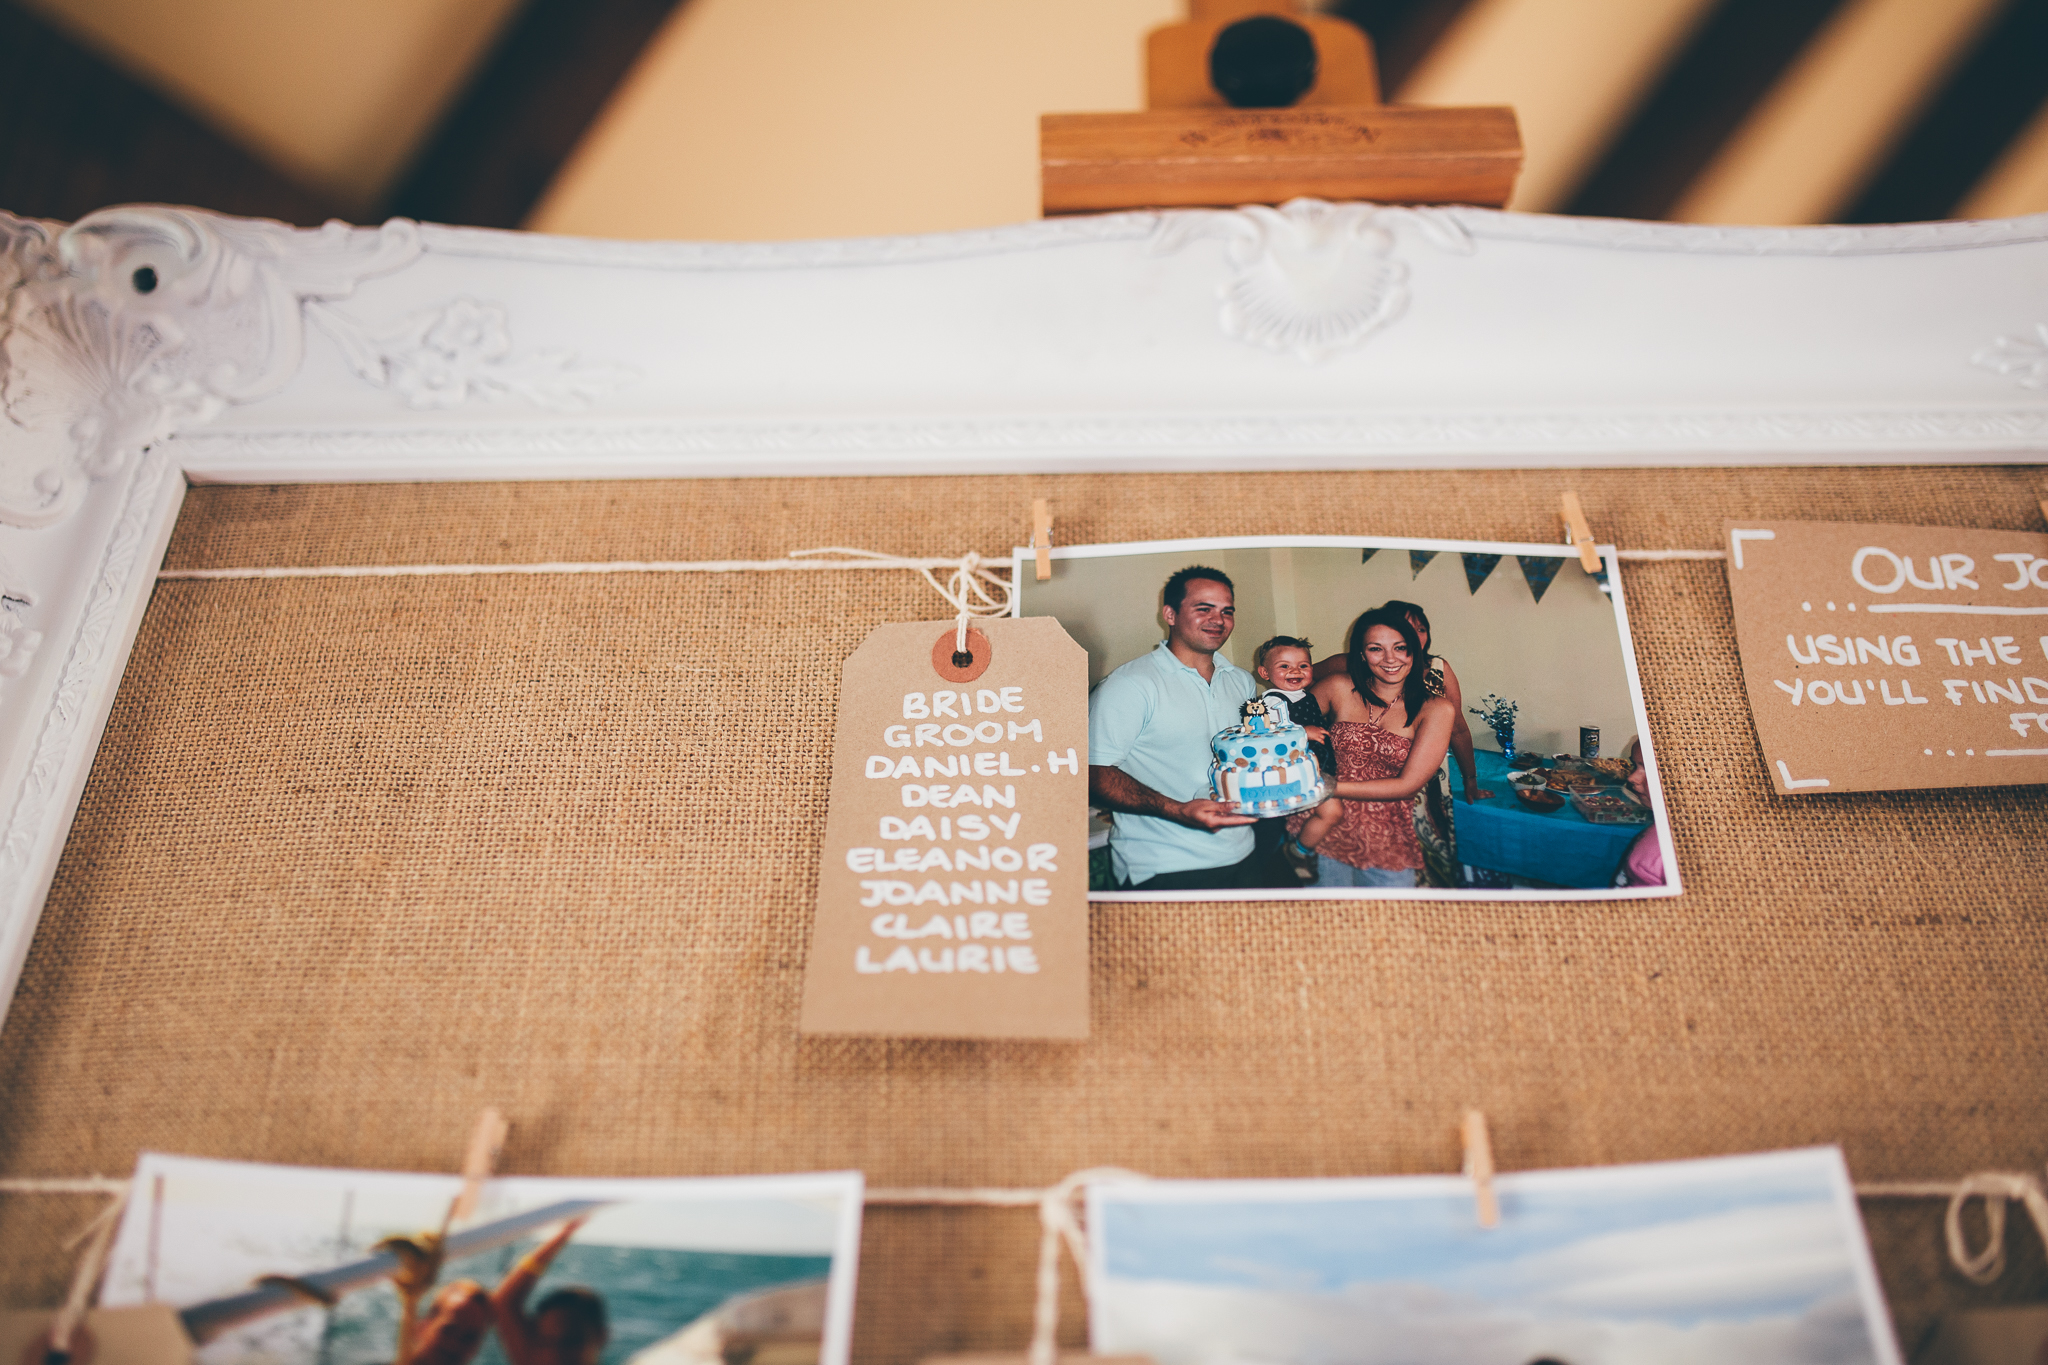 Joanna Nicole Photography Creative artistic wedding photography kent cooling castle barns vintage documentary (17 of 106).jpg